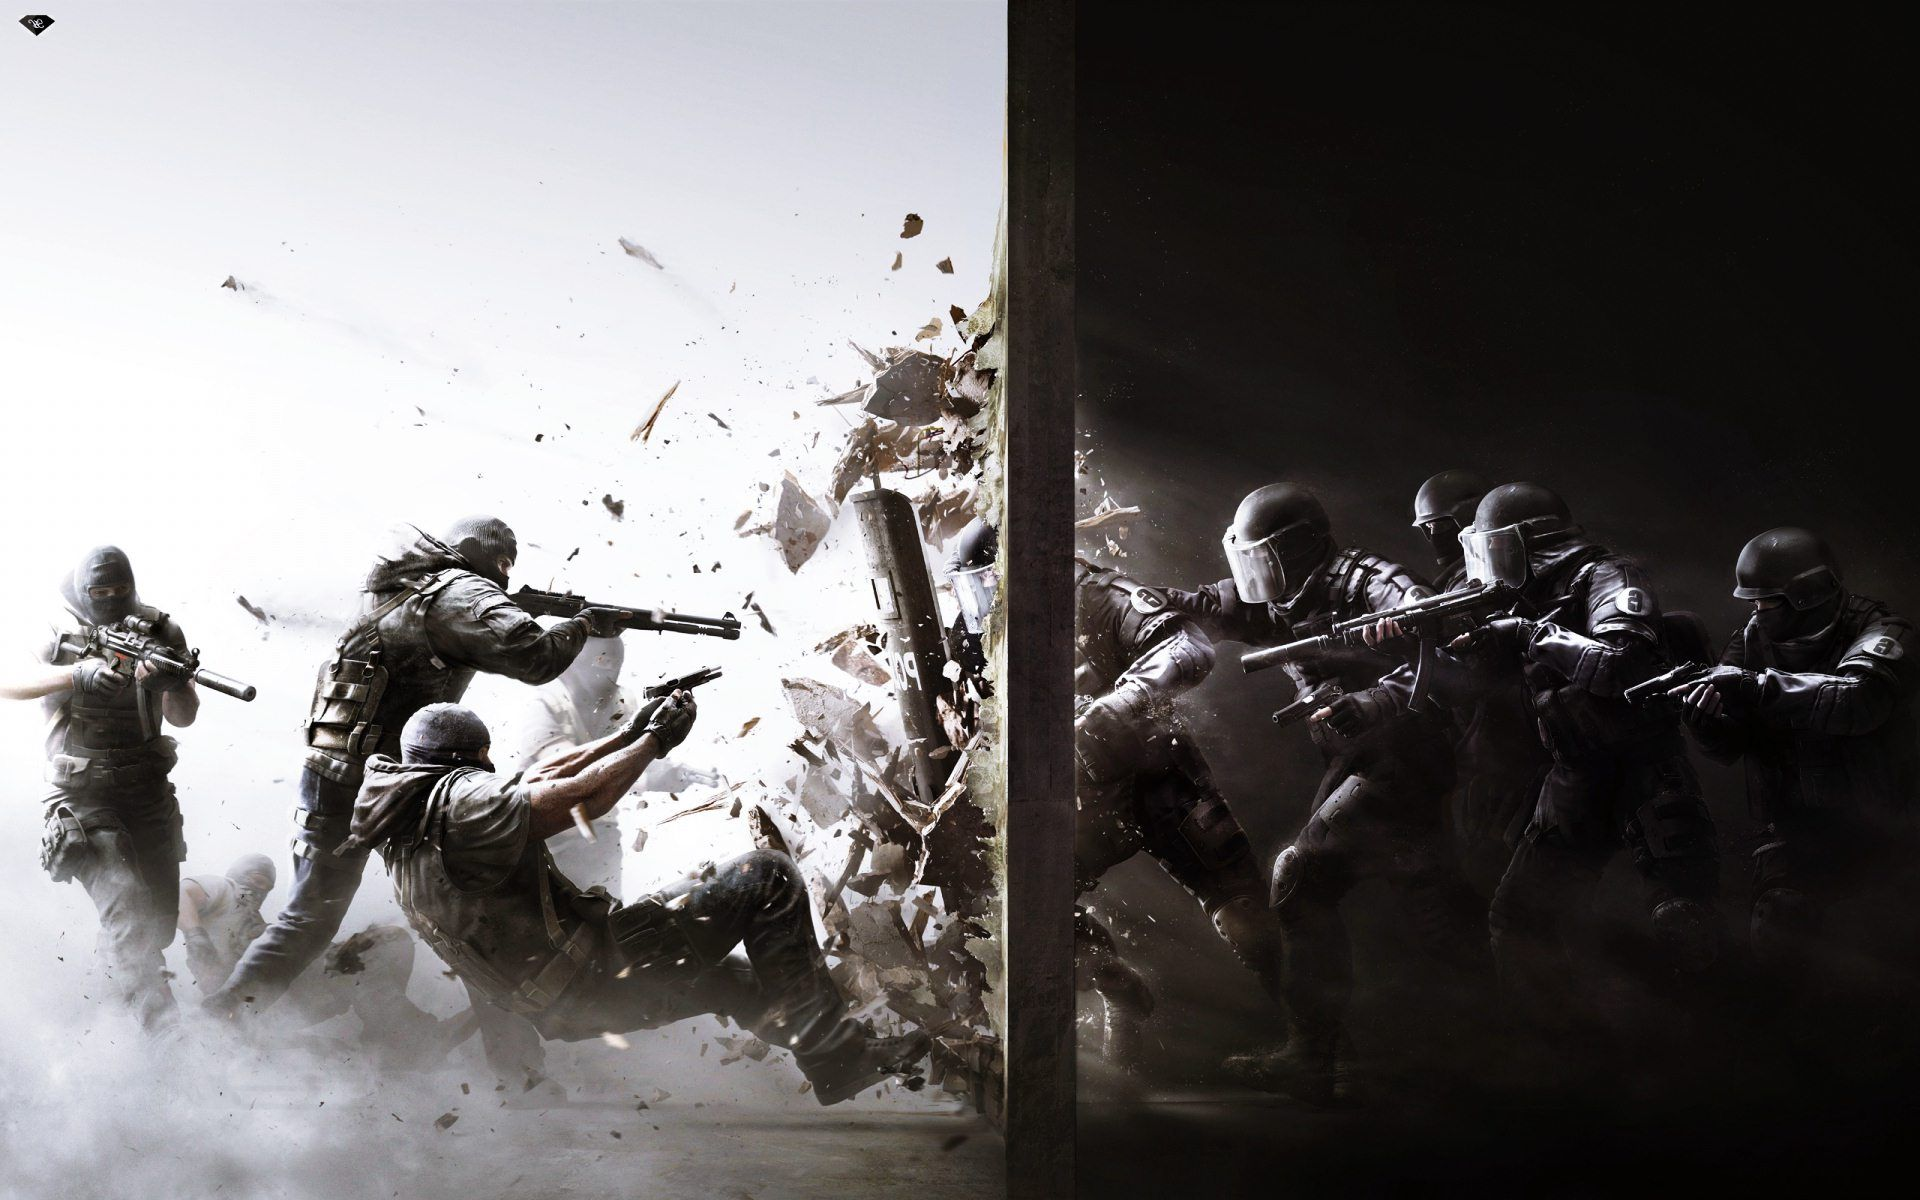 Tom Clancy Rainbow Six Siege Is Beyond Epic As Real As It Gets